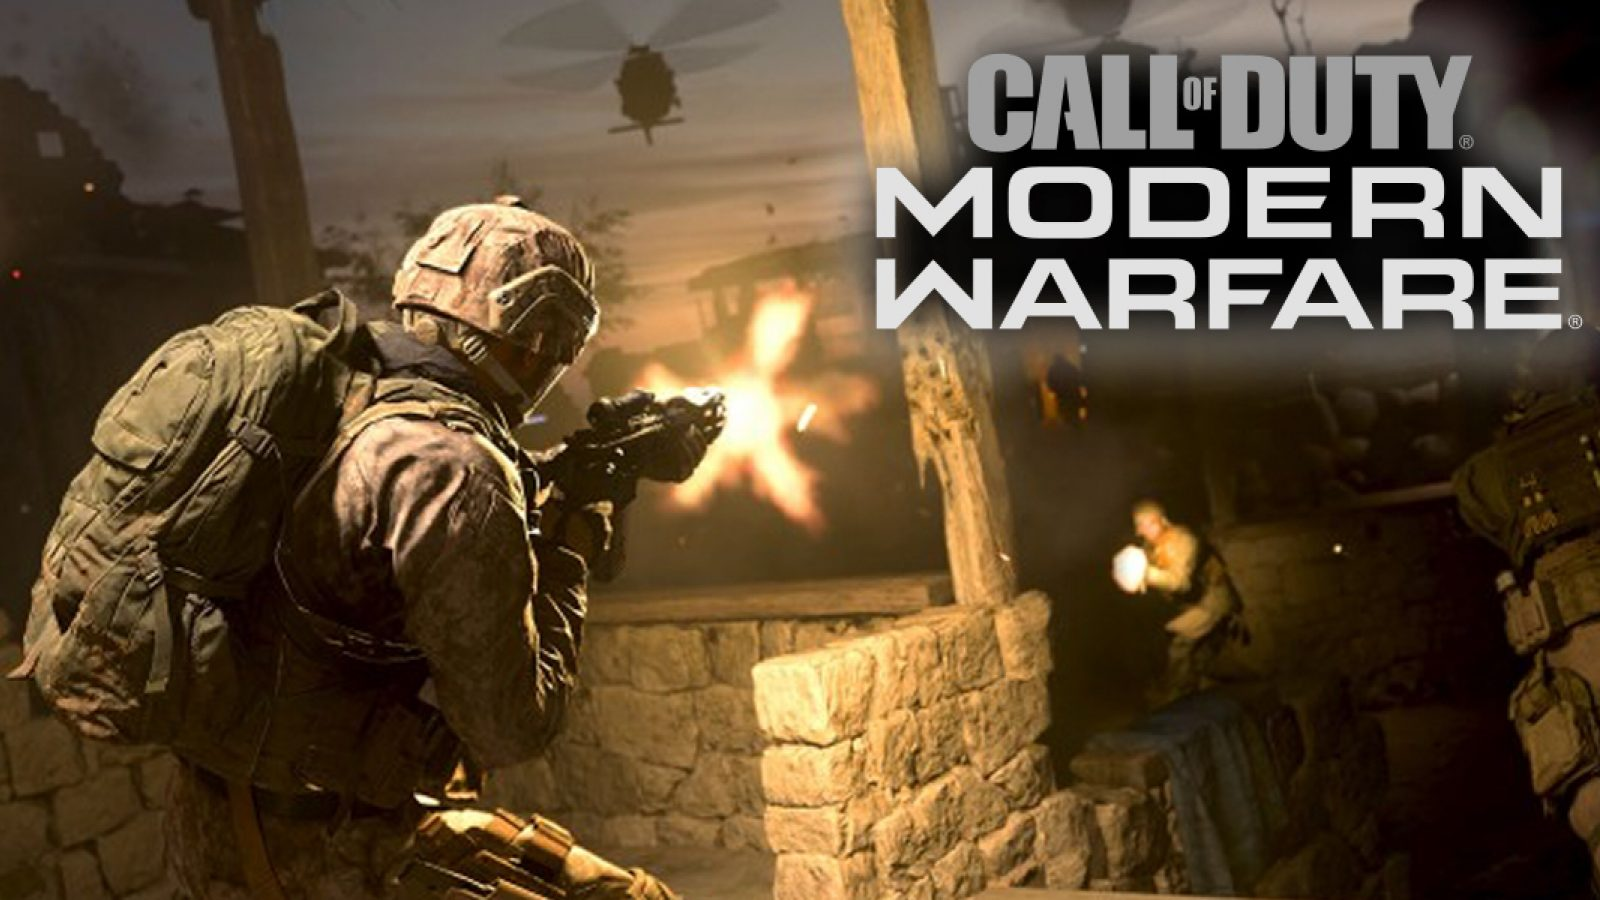 The Infinity Ward Says to one of COD Modern Warfare's biggest complaints